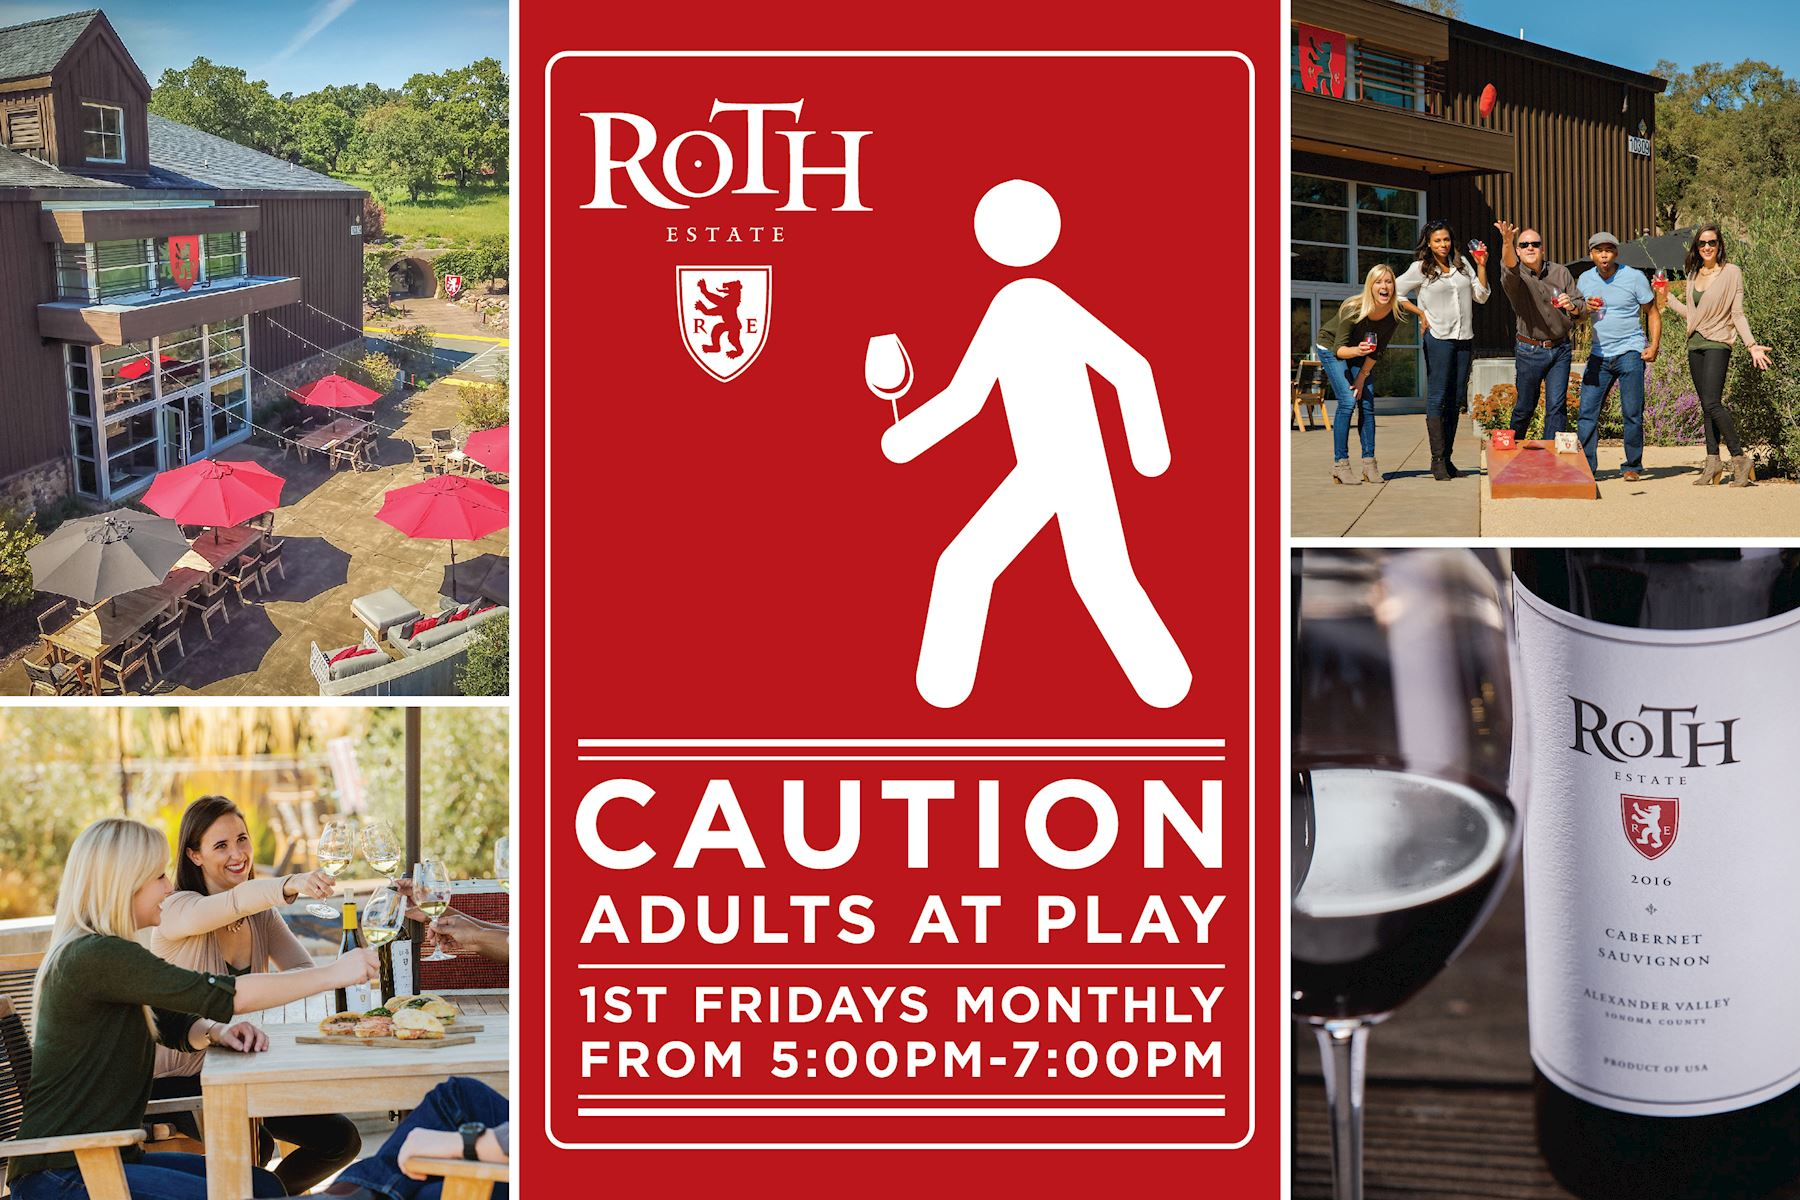 Adults at Play at Roth First Fridays